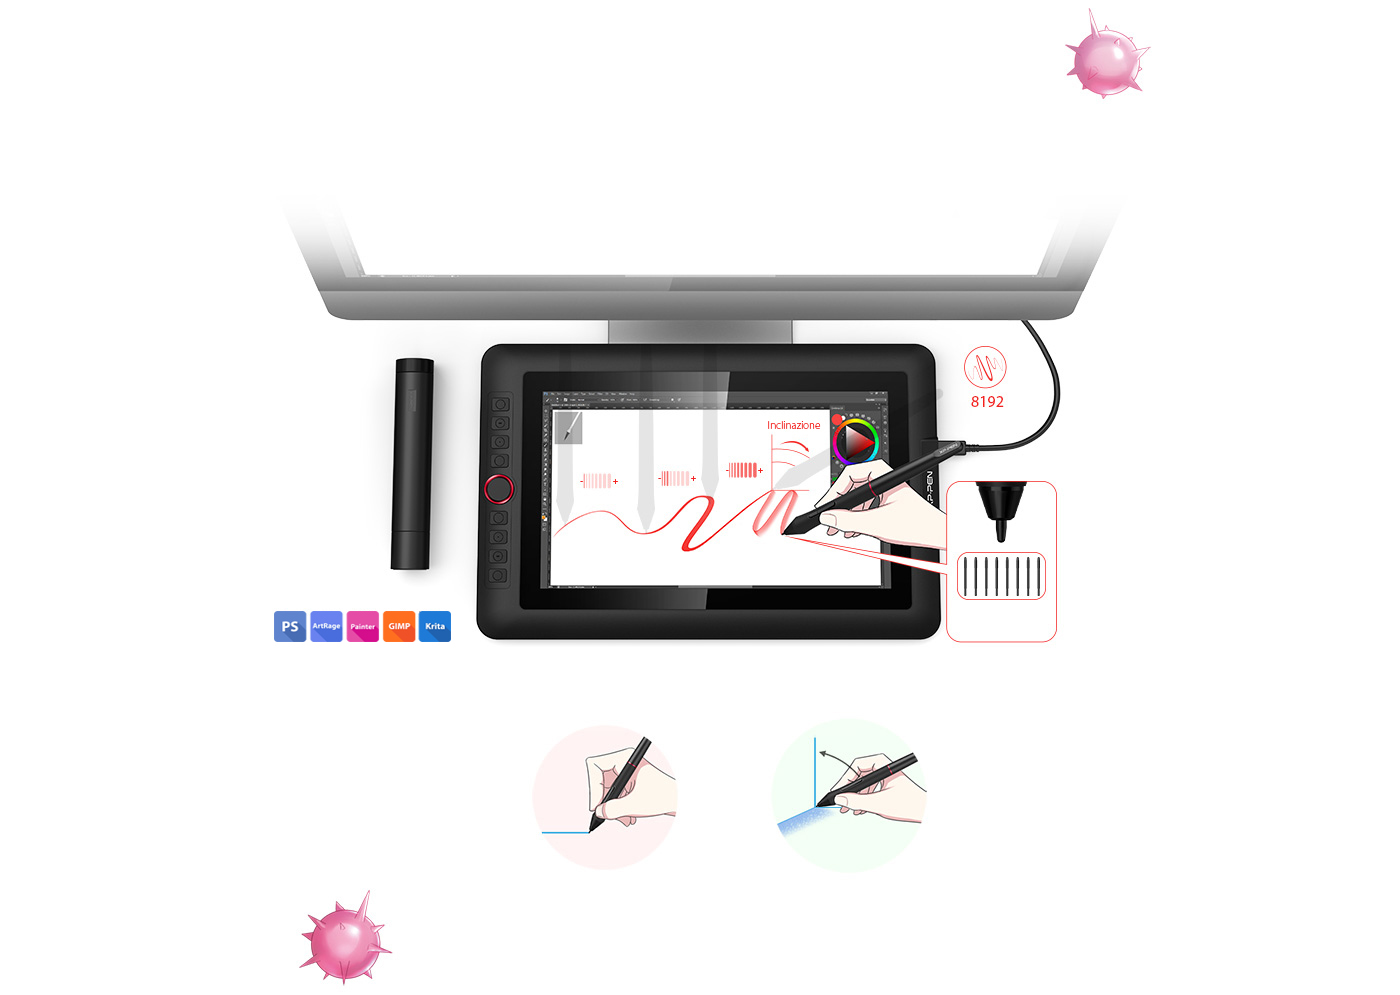 XP-Pen Artist 13.3 Pro portable drawing monitor supports up to 60 degrees of tilt function